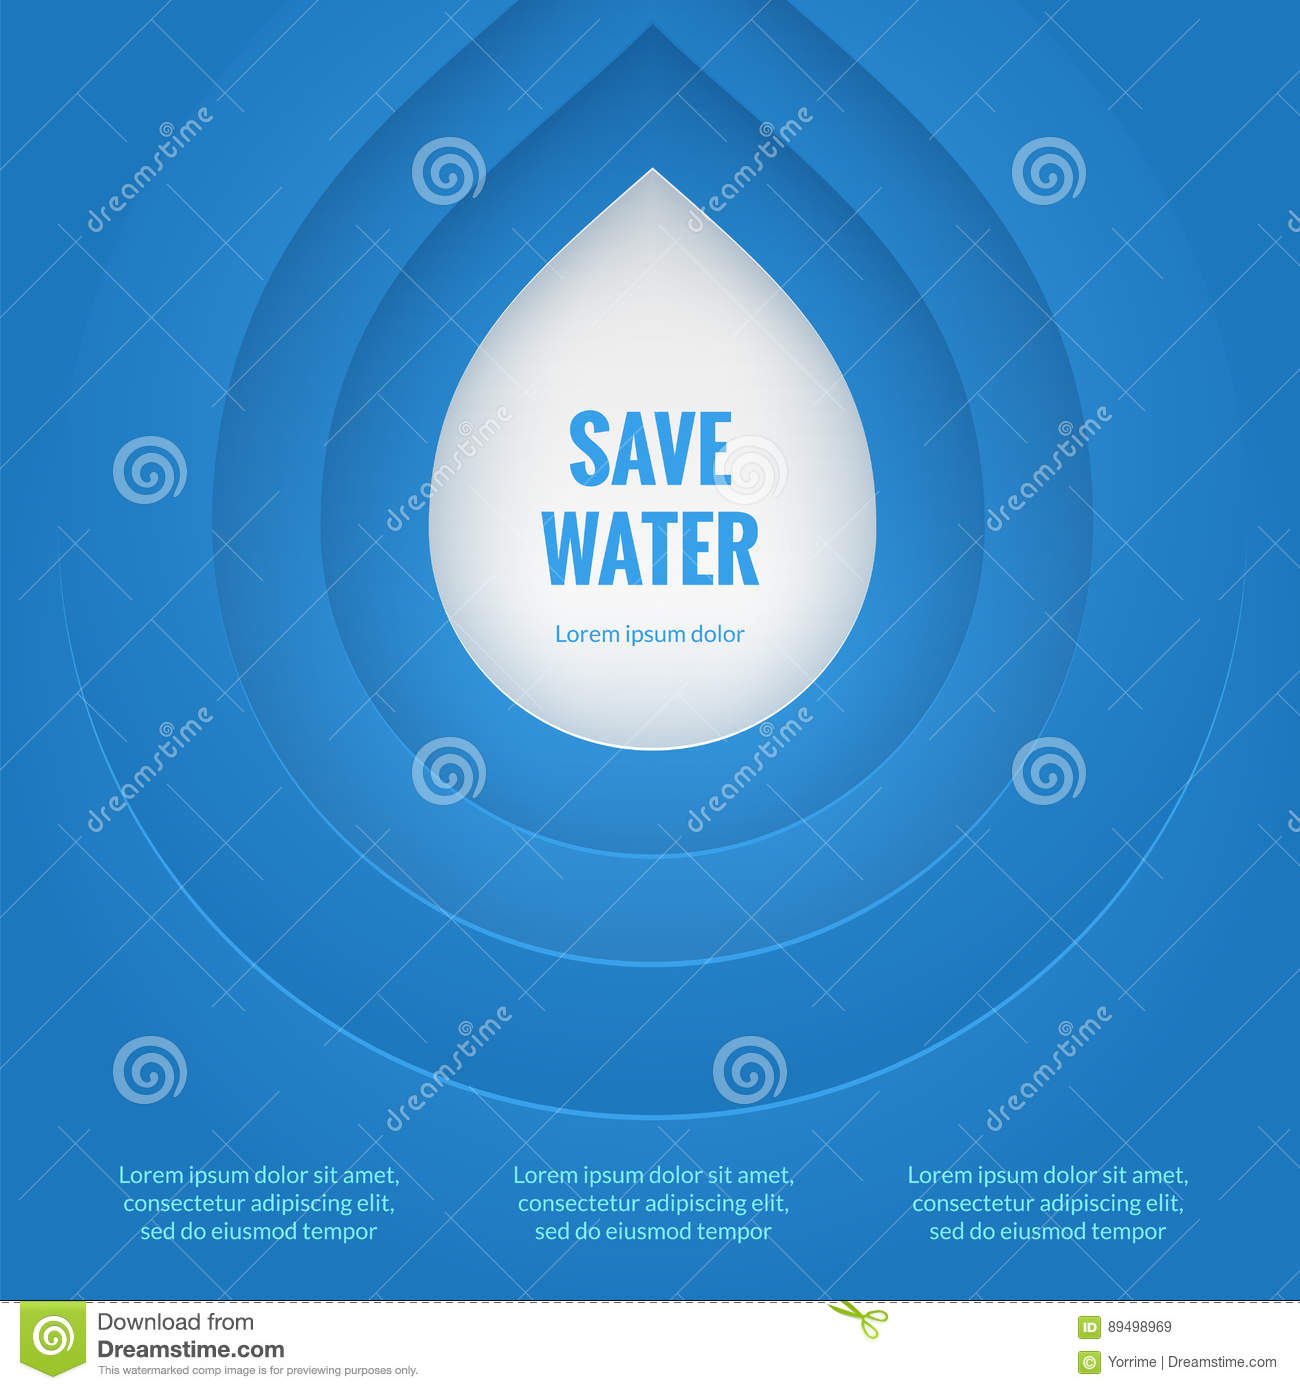 Poster design on save water - Background Blue Concept Drop Eco Poster Save Water